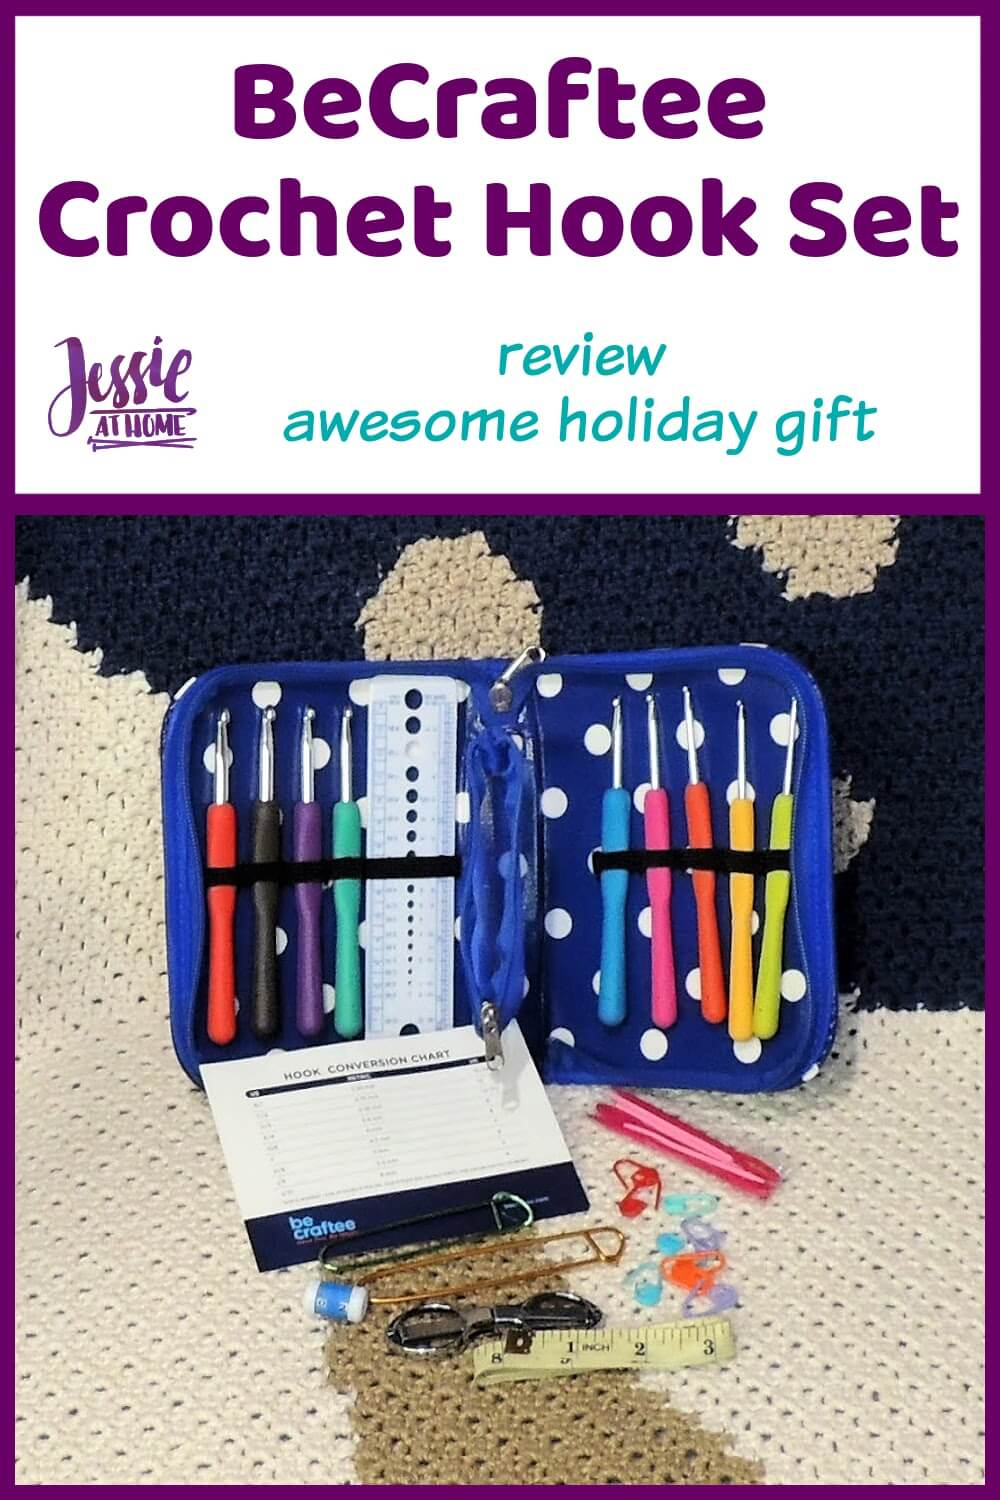 BeCraftee Crochet Hook Set - Awesome Holiday Gift!